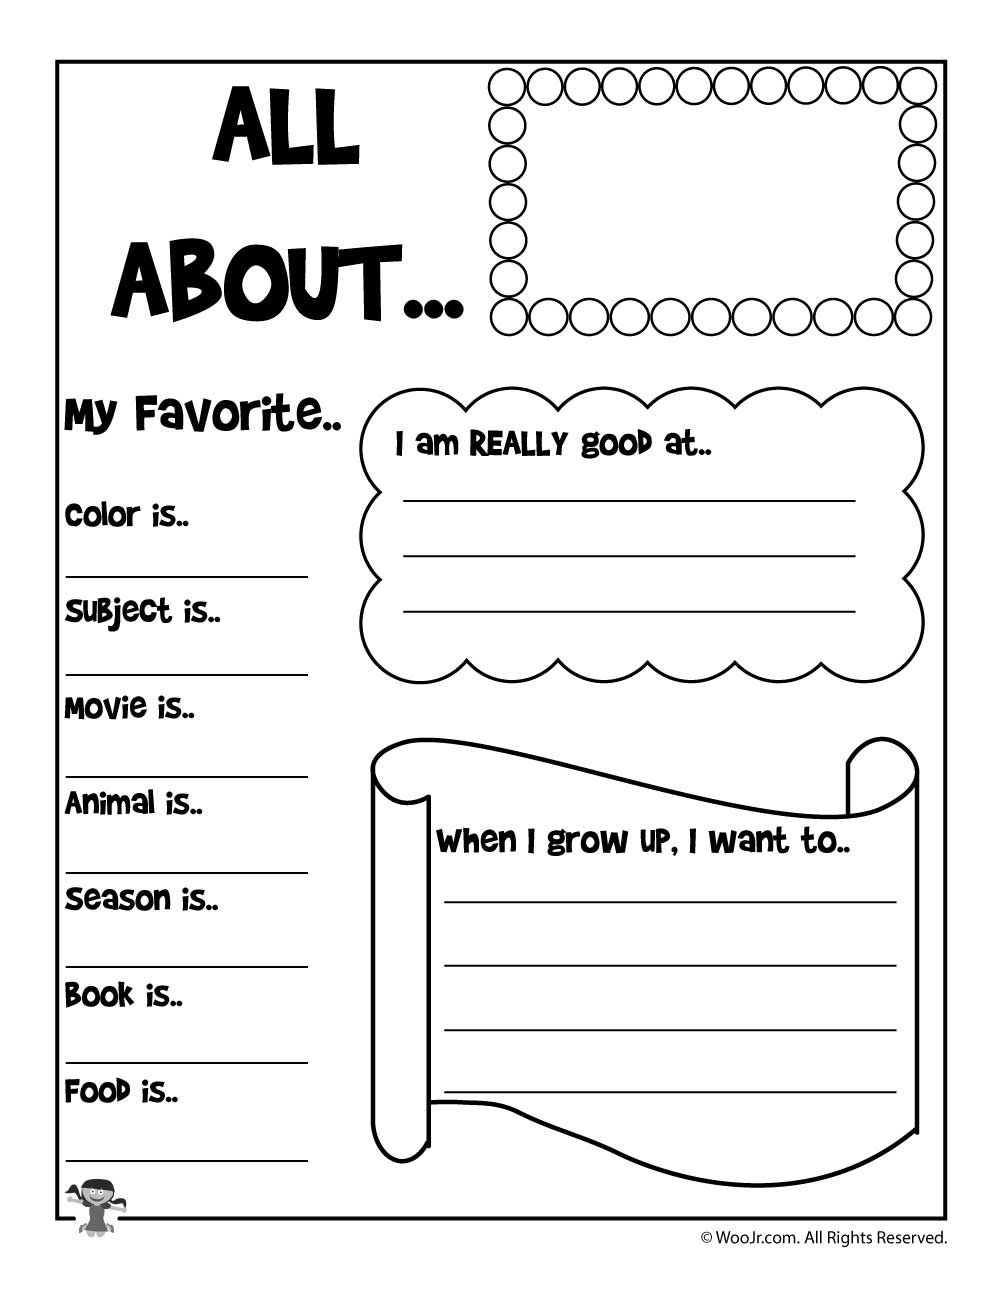 photograph regarding All About Me Printable identify Printable More than Me Worksheets Printables for Youngsters All